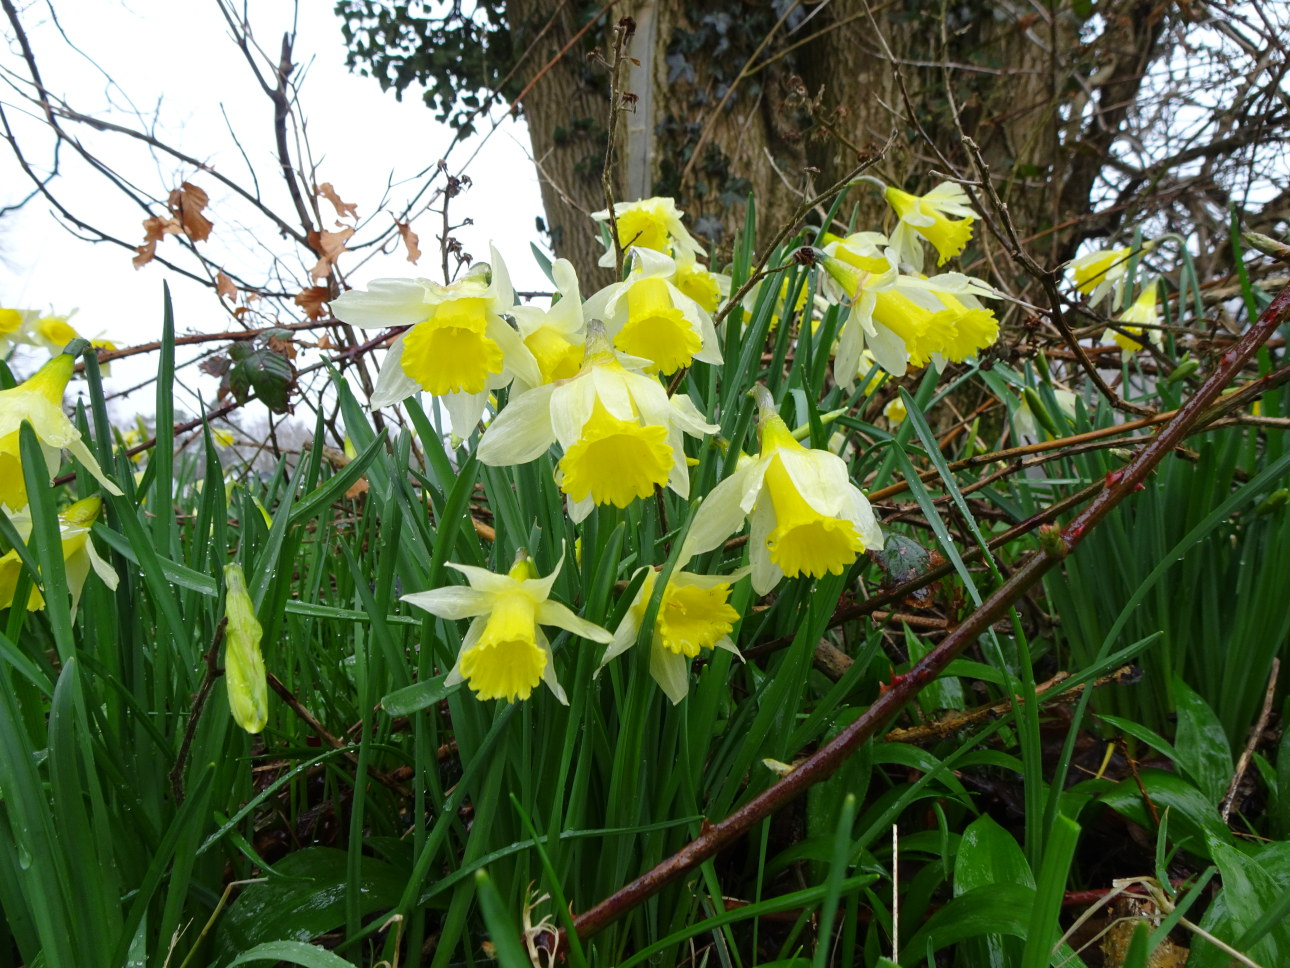 Daffodils in the showers